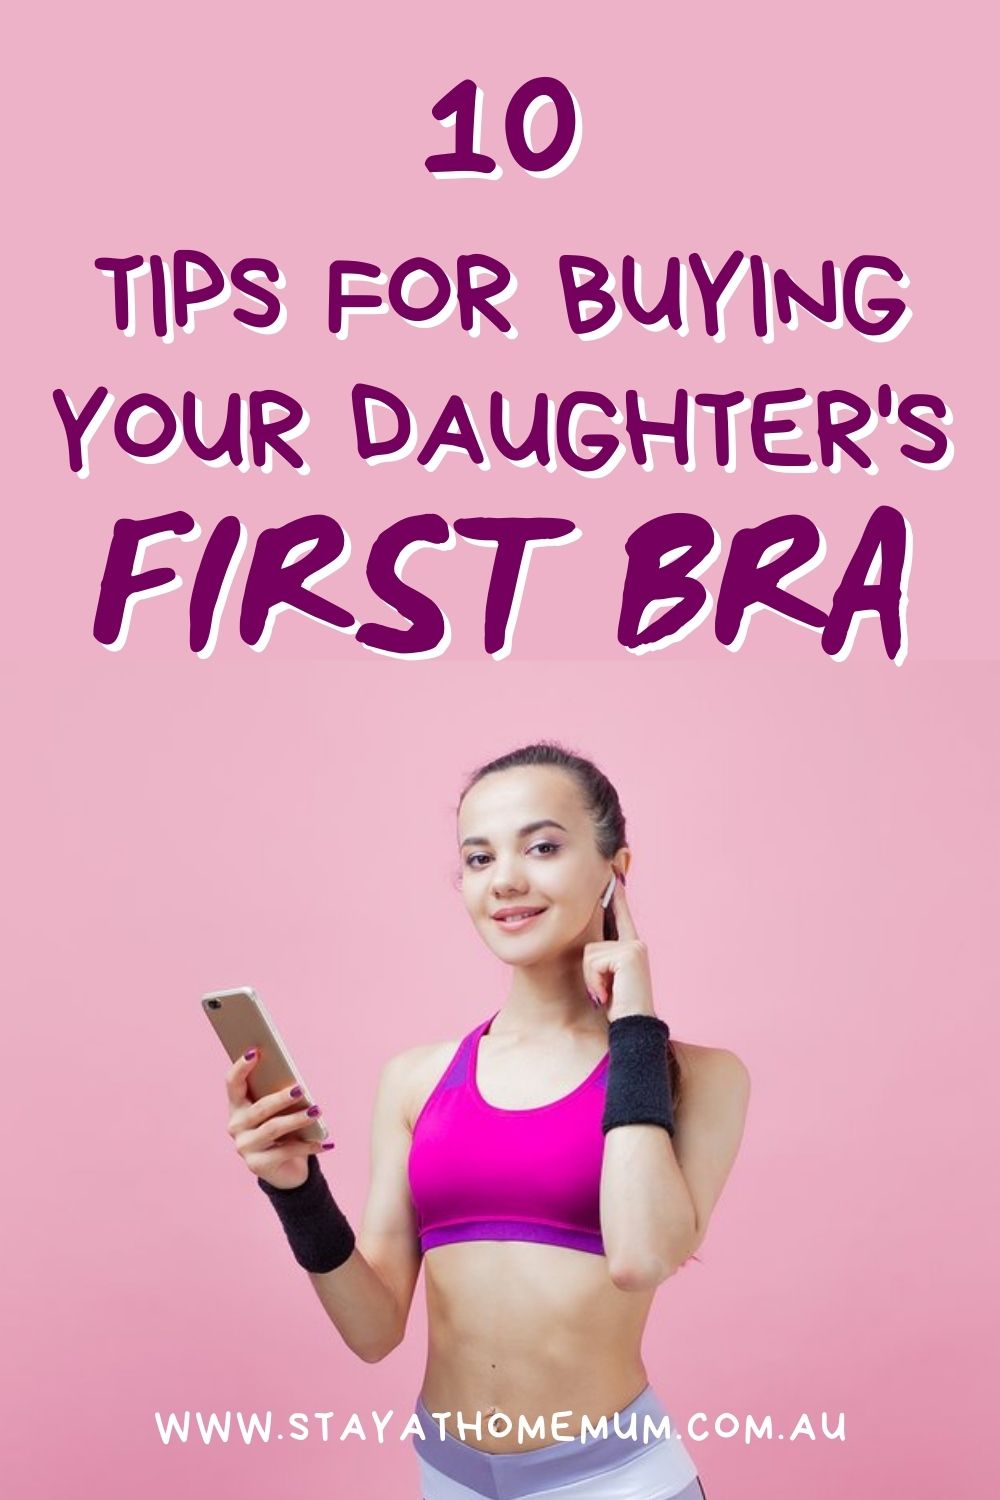 10 Tips for Buying Your Daughter's First Bra Pinnable